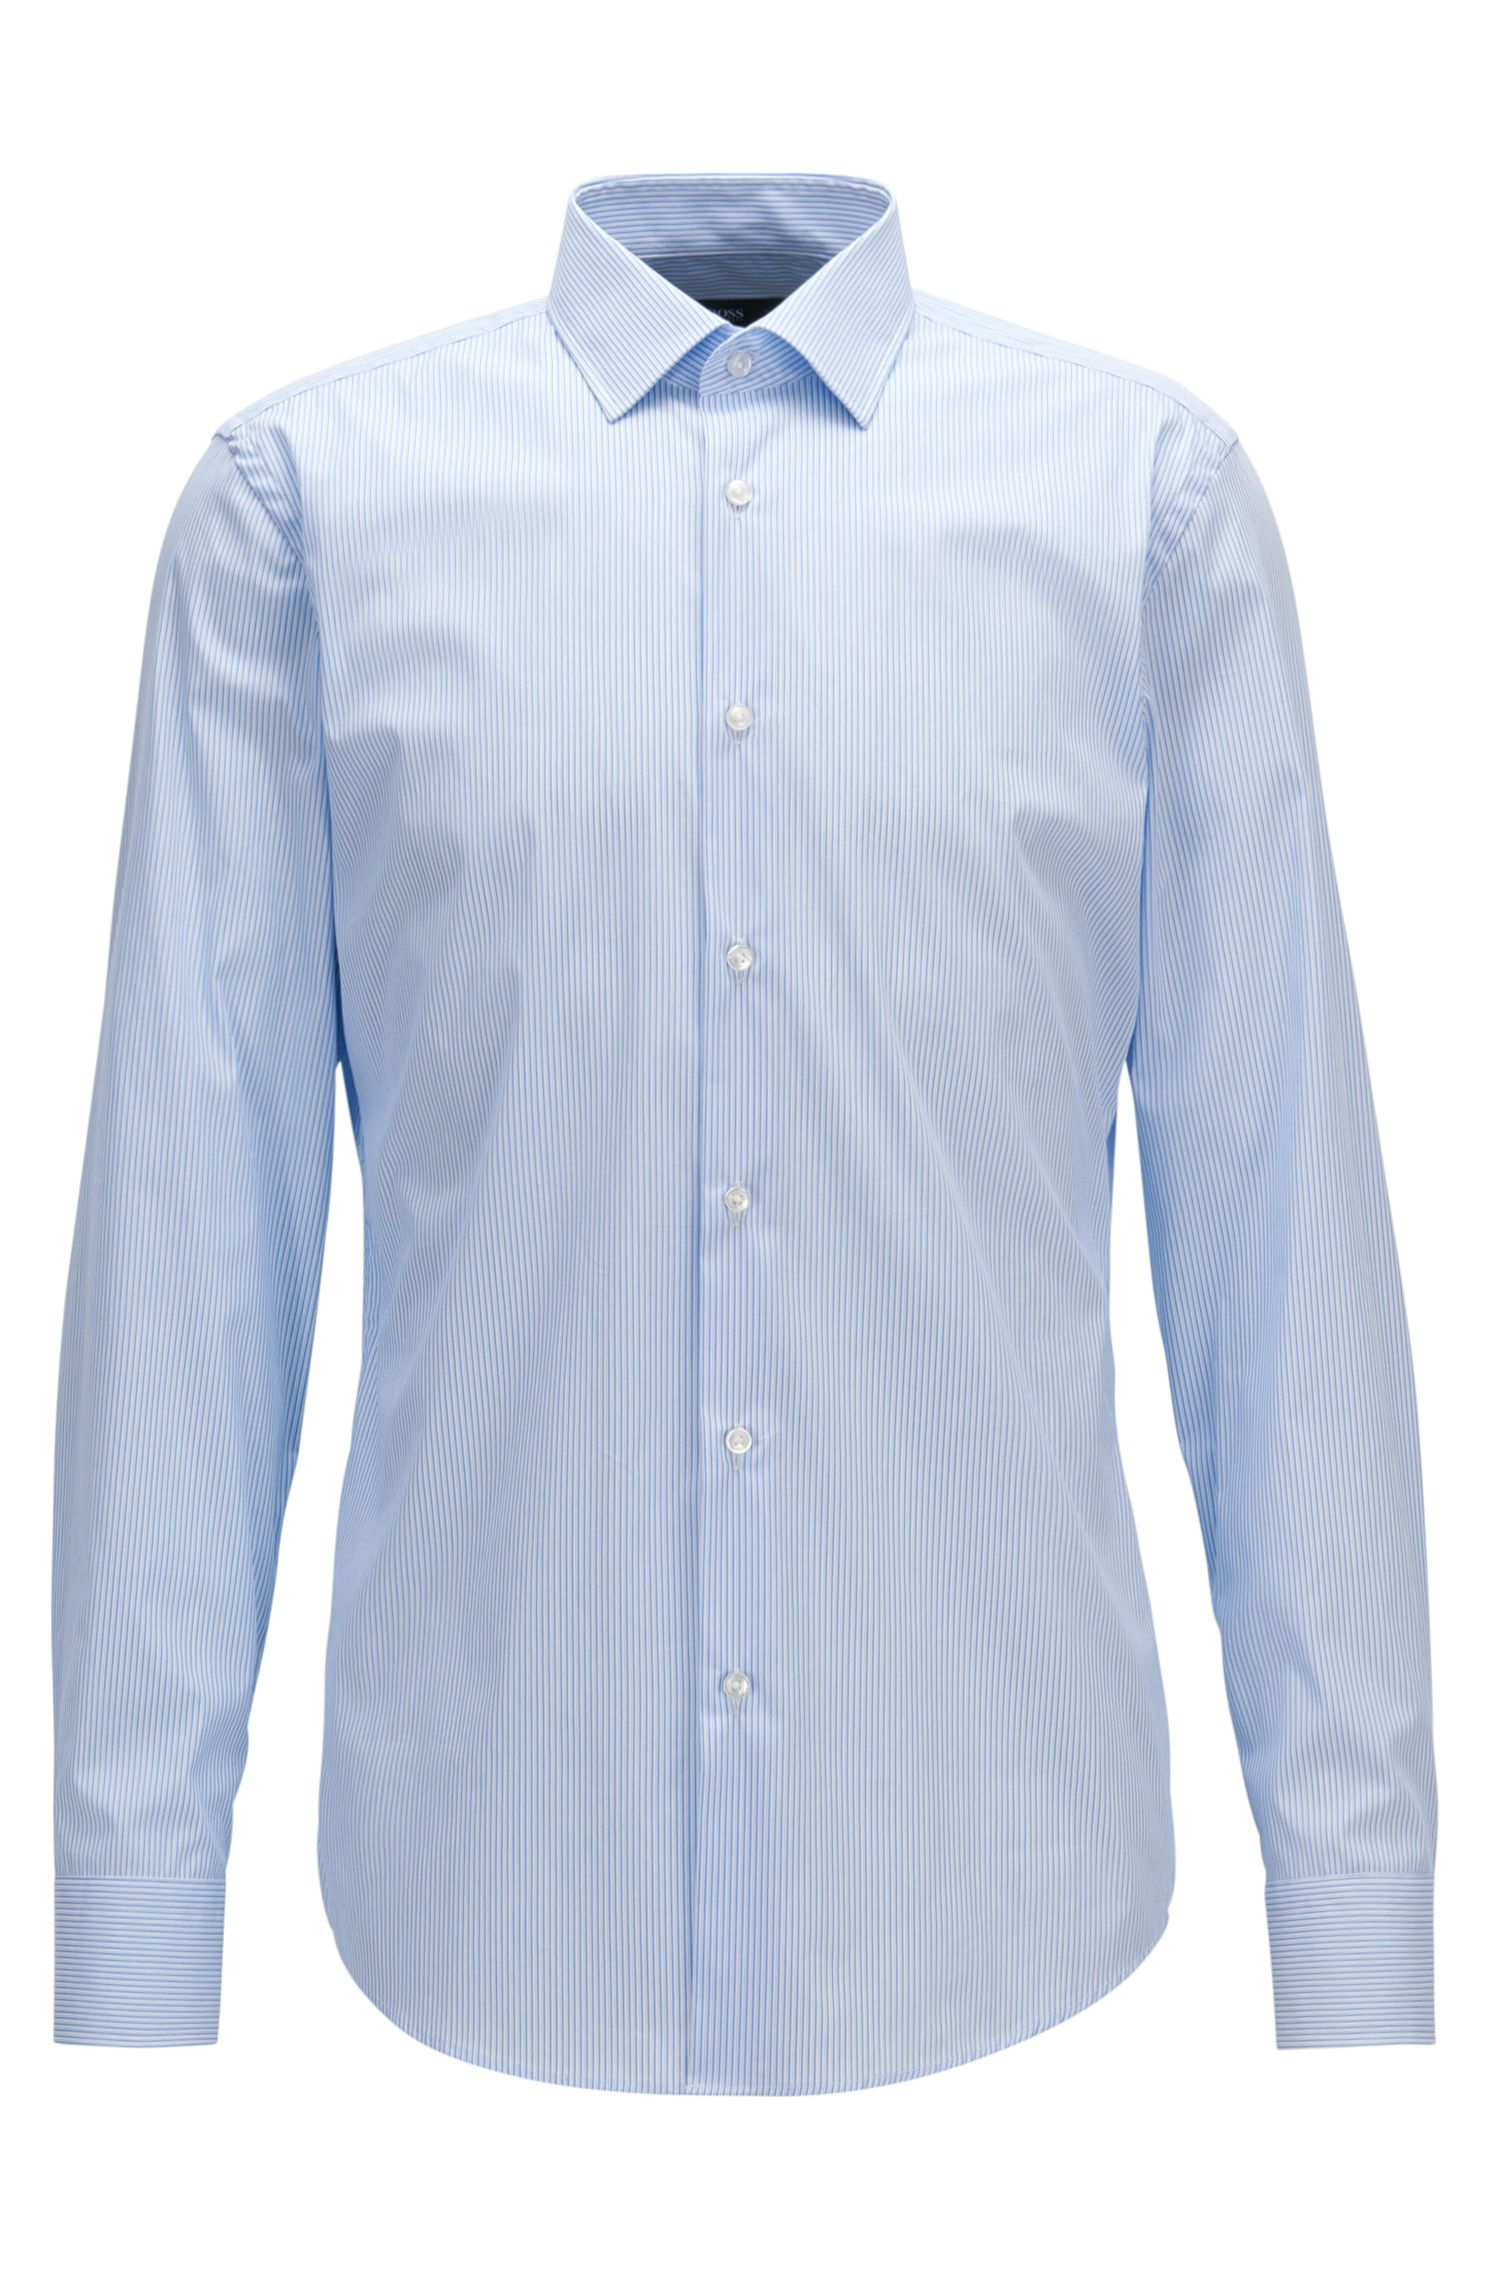 Cotton-blend shirt in a slim fit